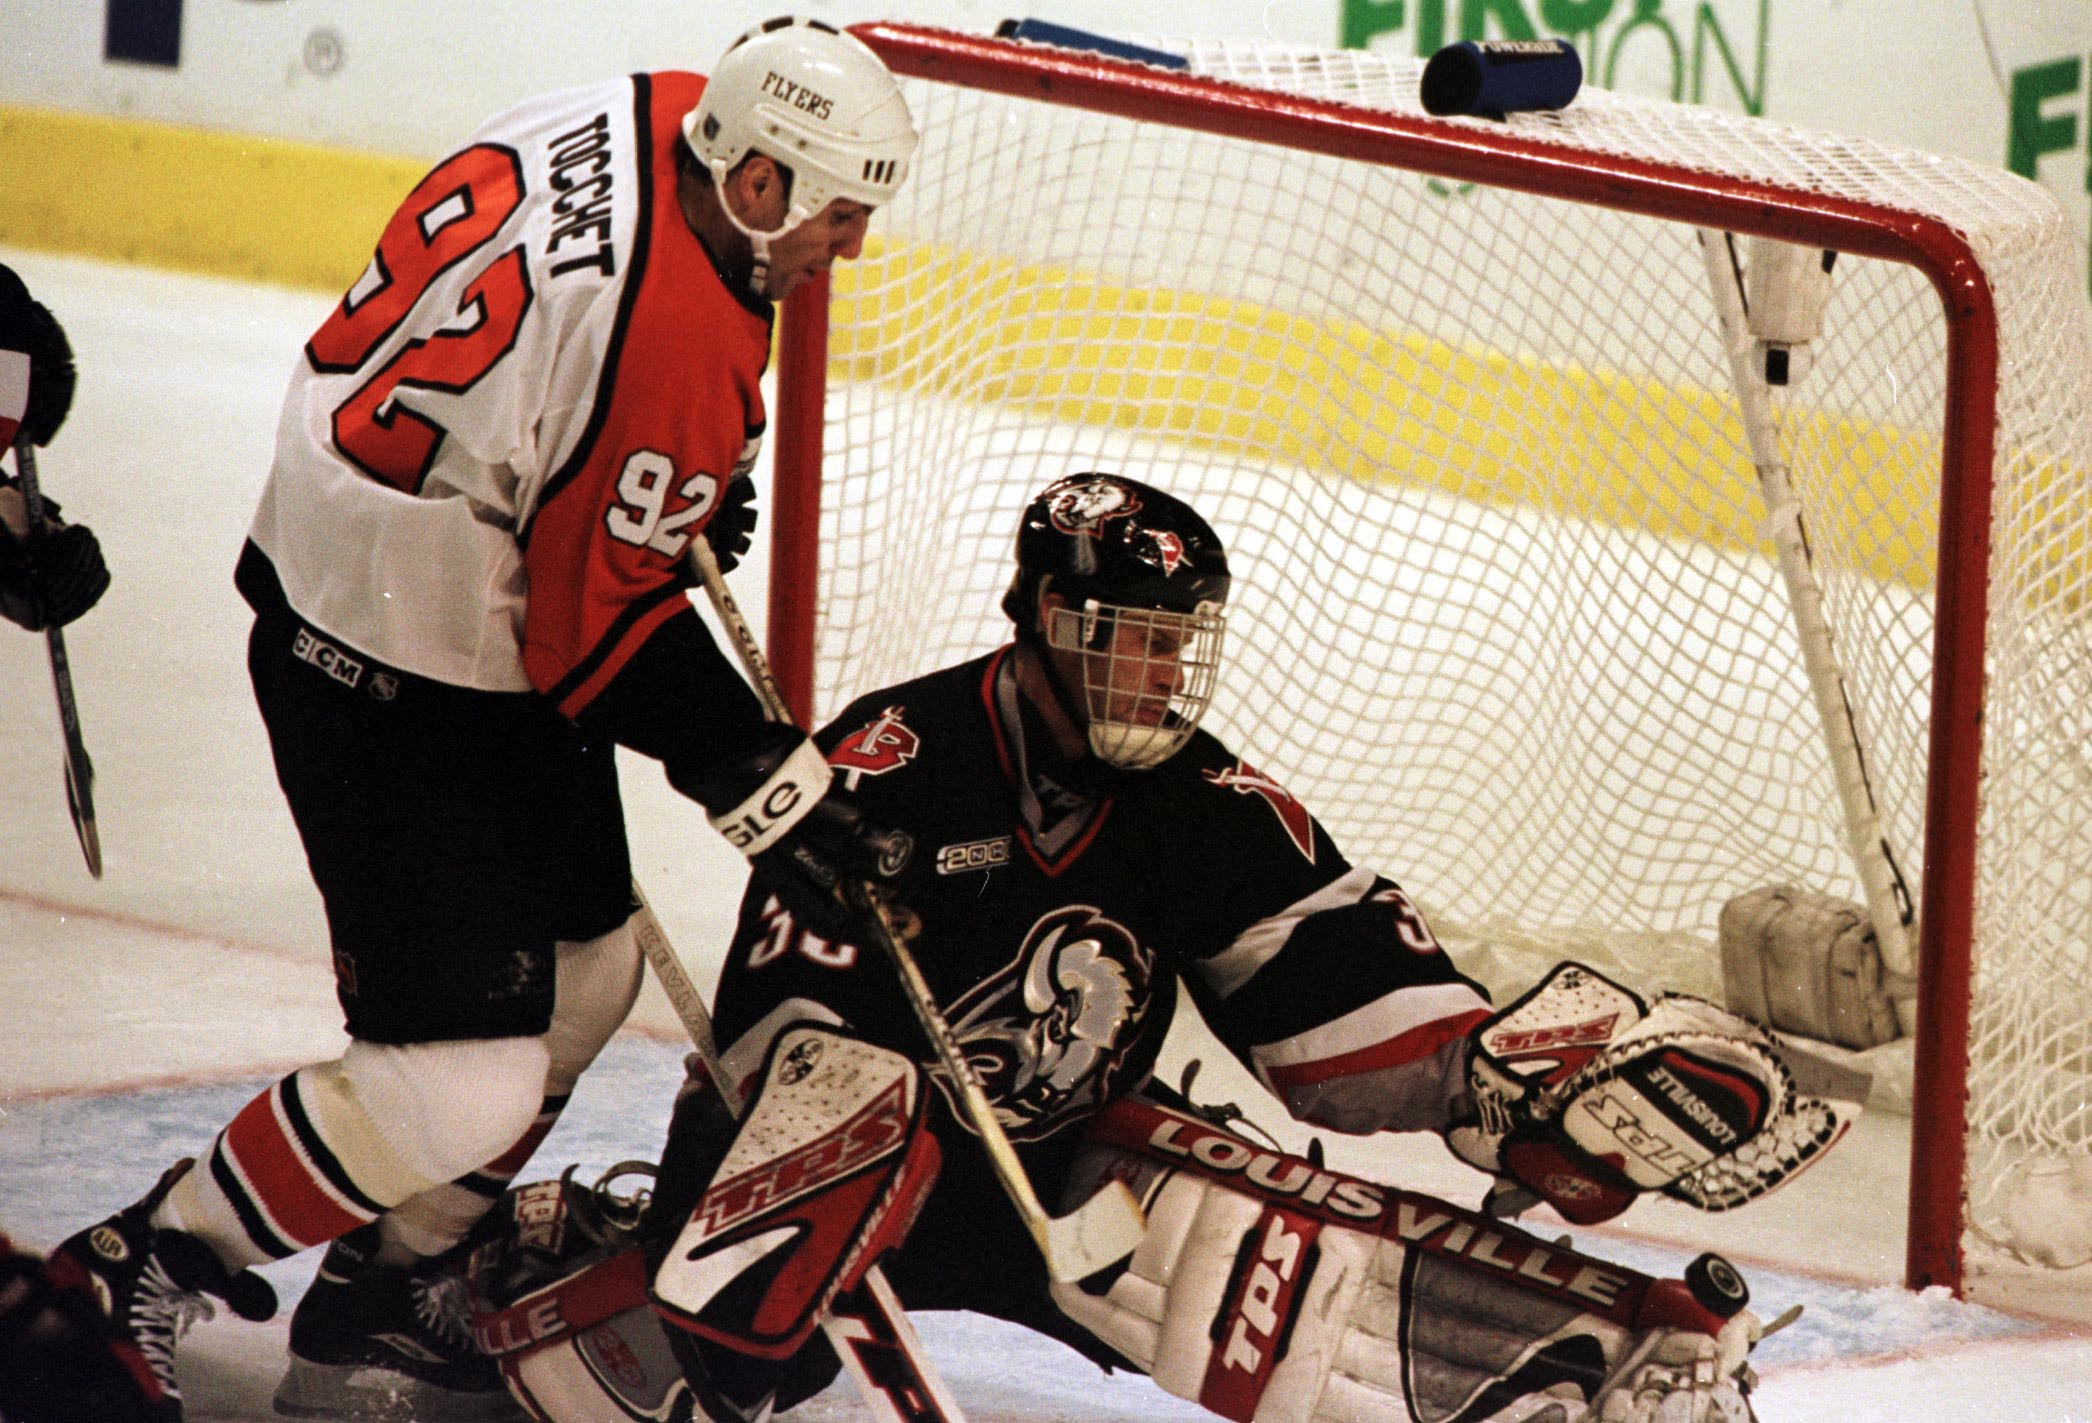 14 Apr 2000: Goalie Dominik Hasek #39 of the Buffalo Sabres blocks a shot by Flyers RIck Tocchet #92 of the Philadelphia Flyers during game two of the NHL Eastern Conference Quarterfinals between the Buffalo Sabres and the Philadelphia Flyers at the First